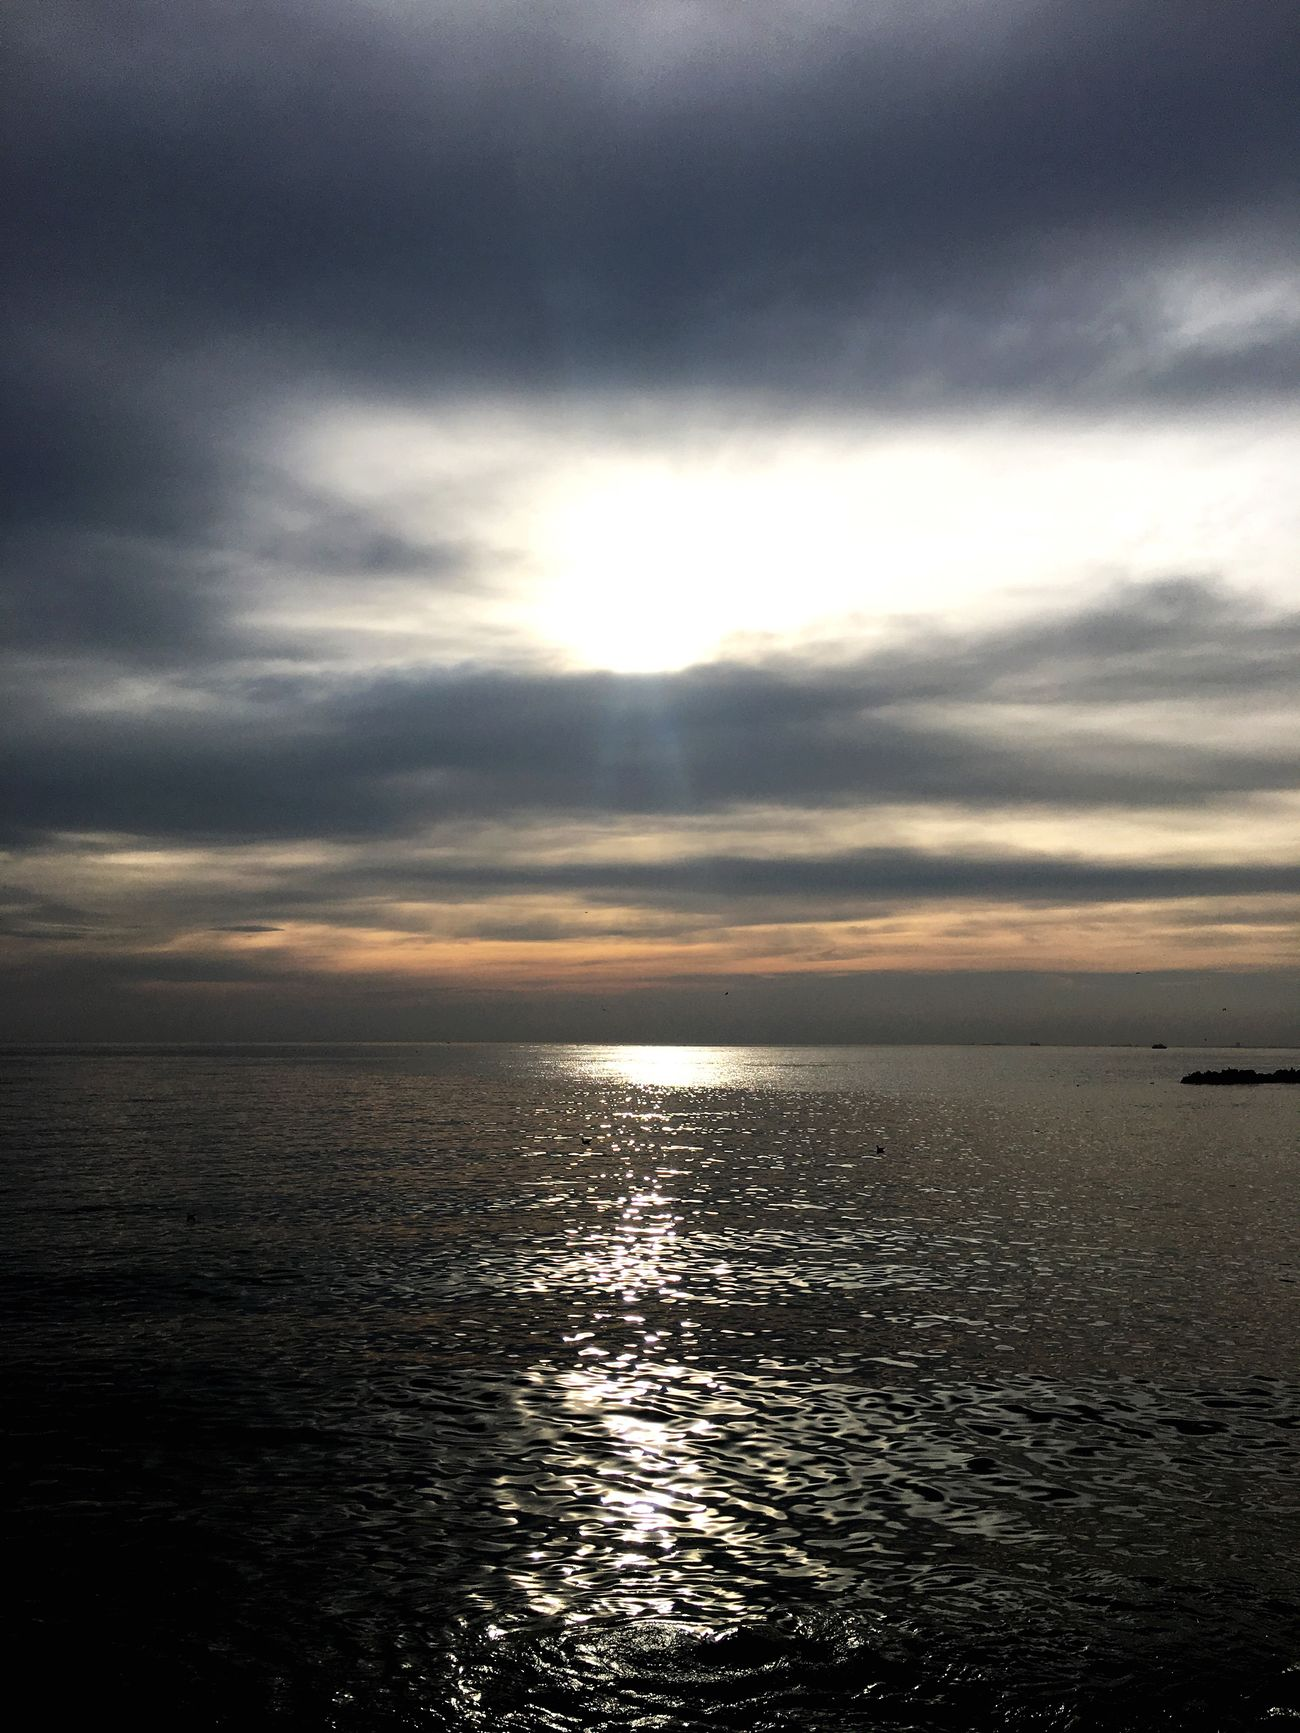 No People Day Outdoors Sky Beauty In Nature Sea Nature Lovely Weather Pure Istanbul Turkey Bostancı Sahil Sunset